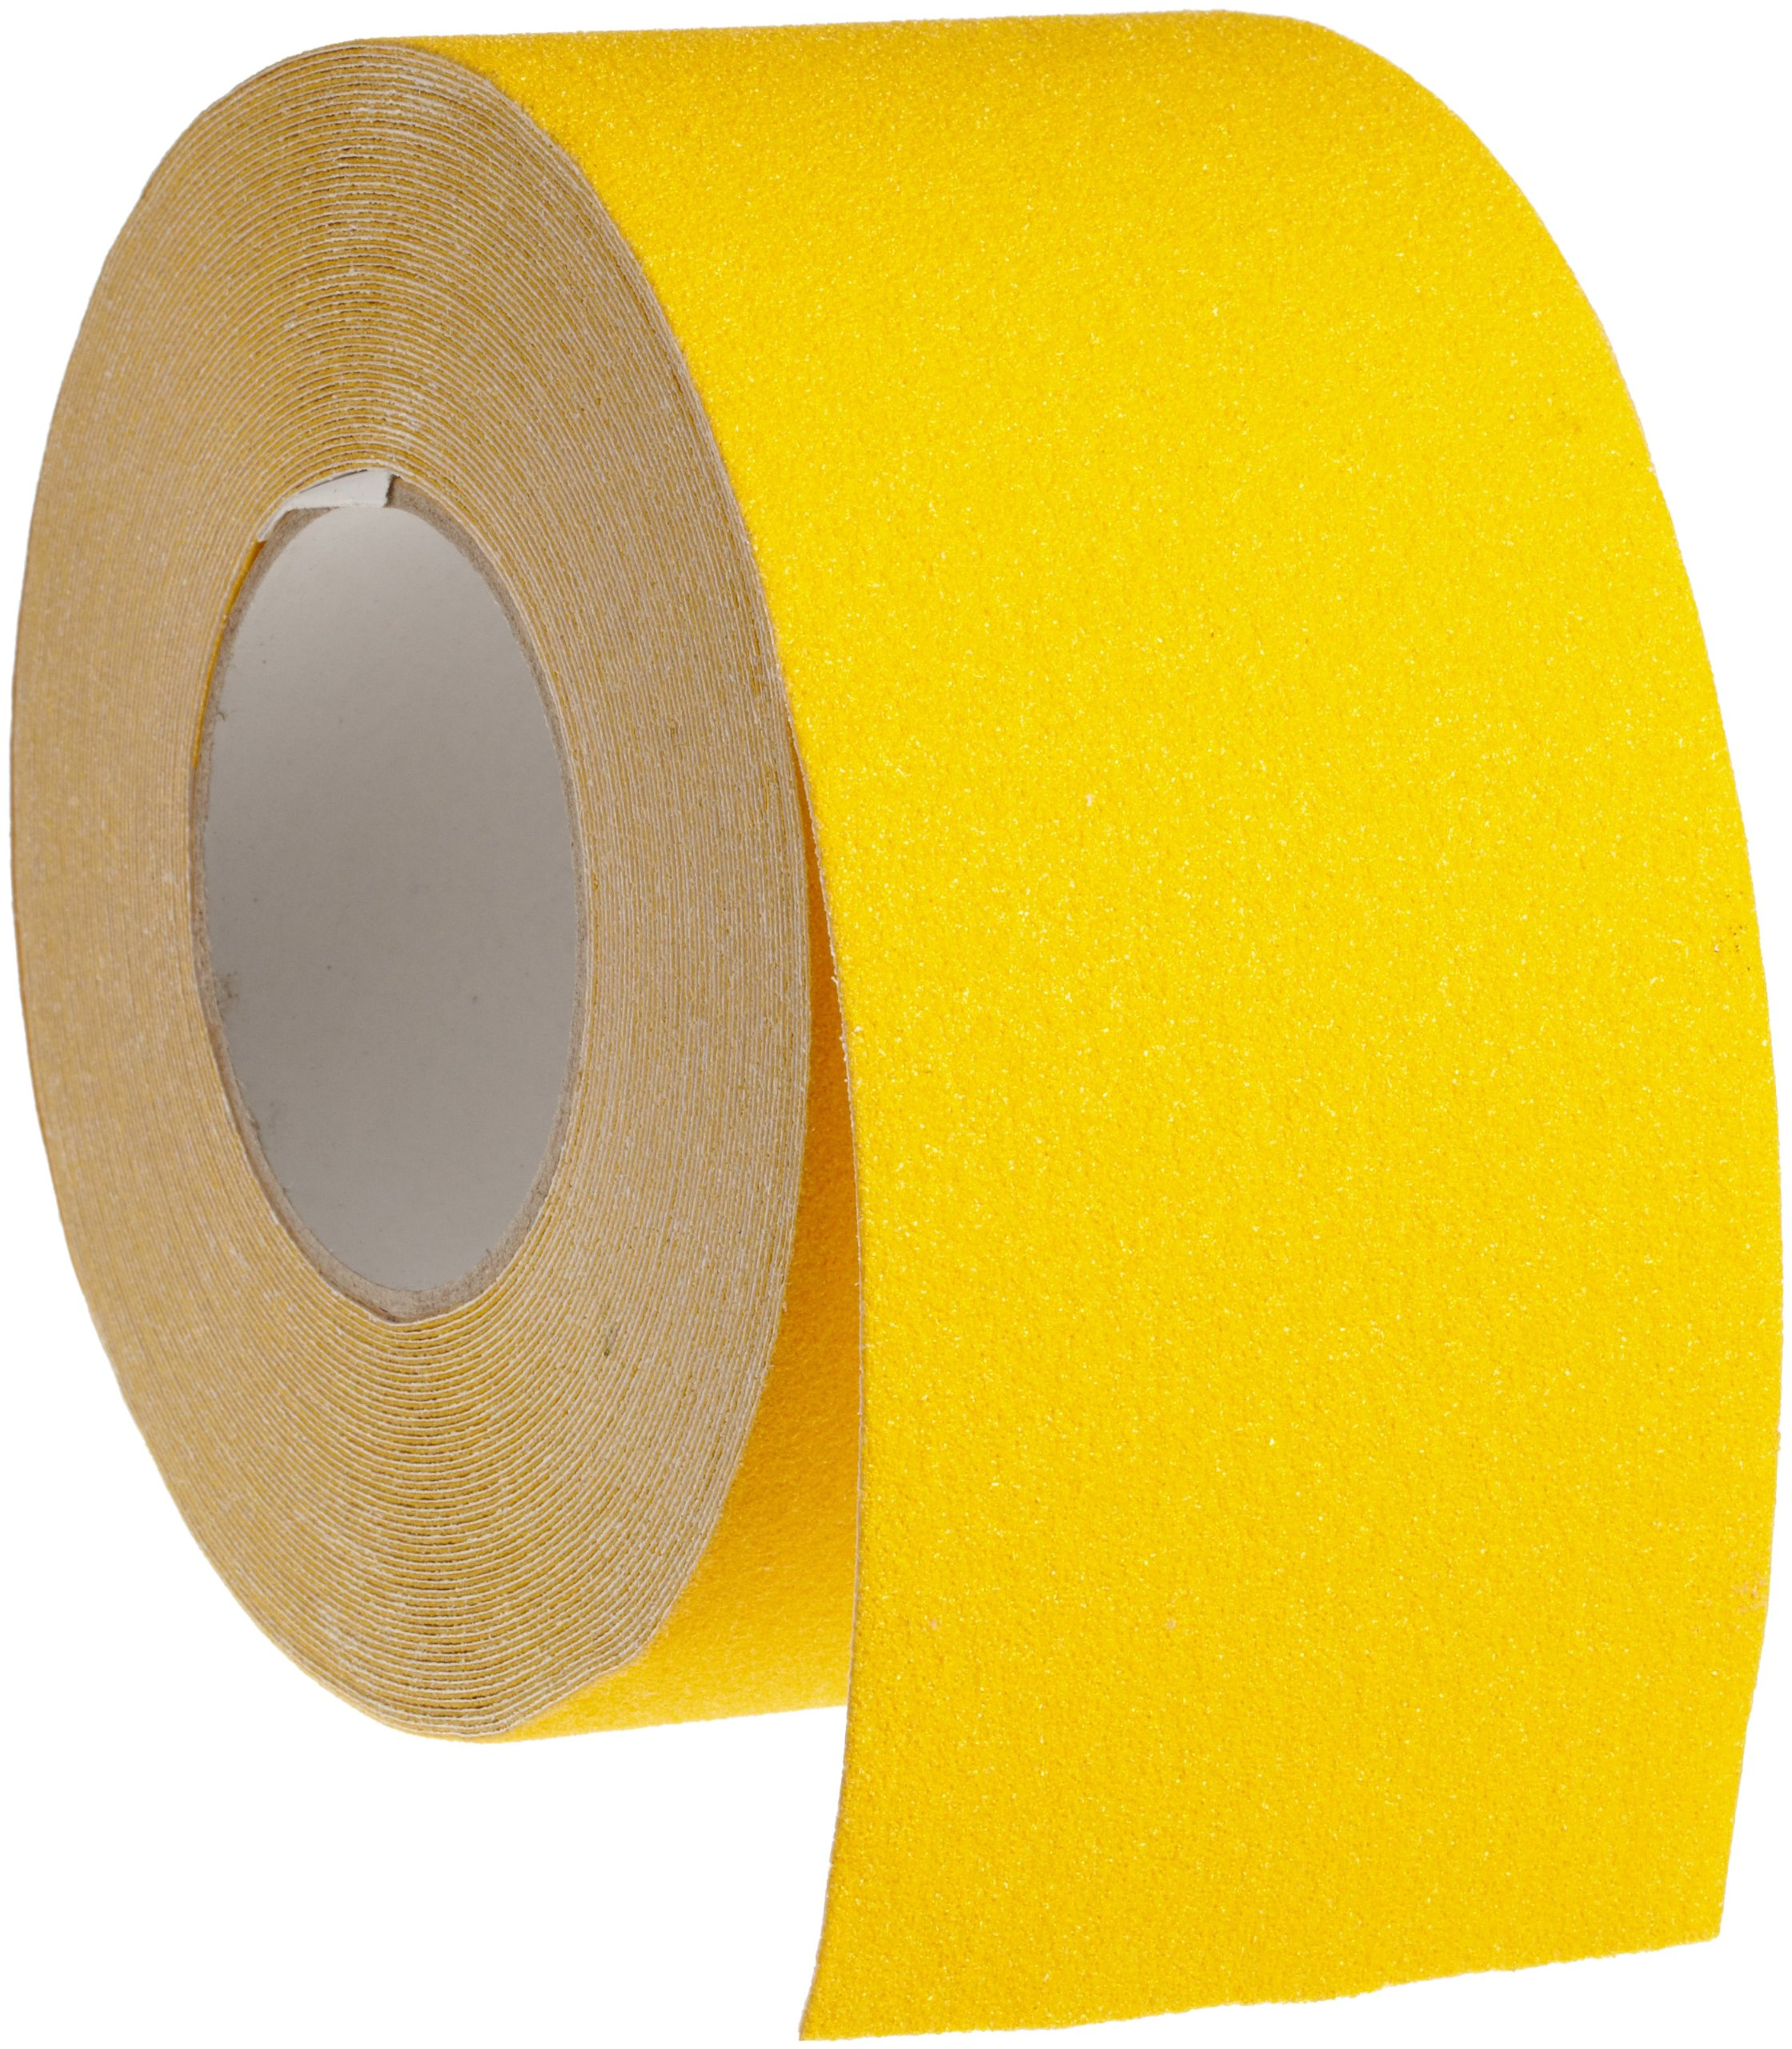 Brady 60' Length, 4'' Width, B-916 Grit-Coated Polyester Tape, Safety Yellow Color Anti-Skid Tape Roll Mounted